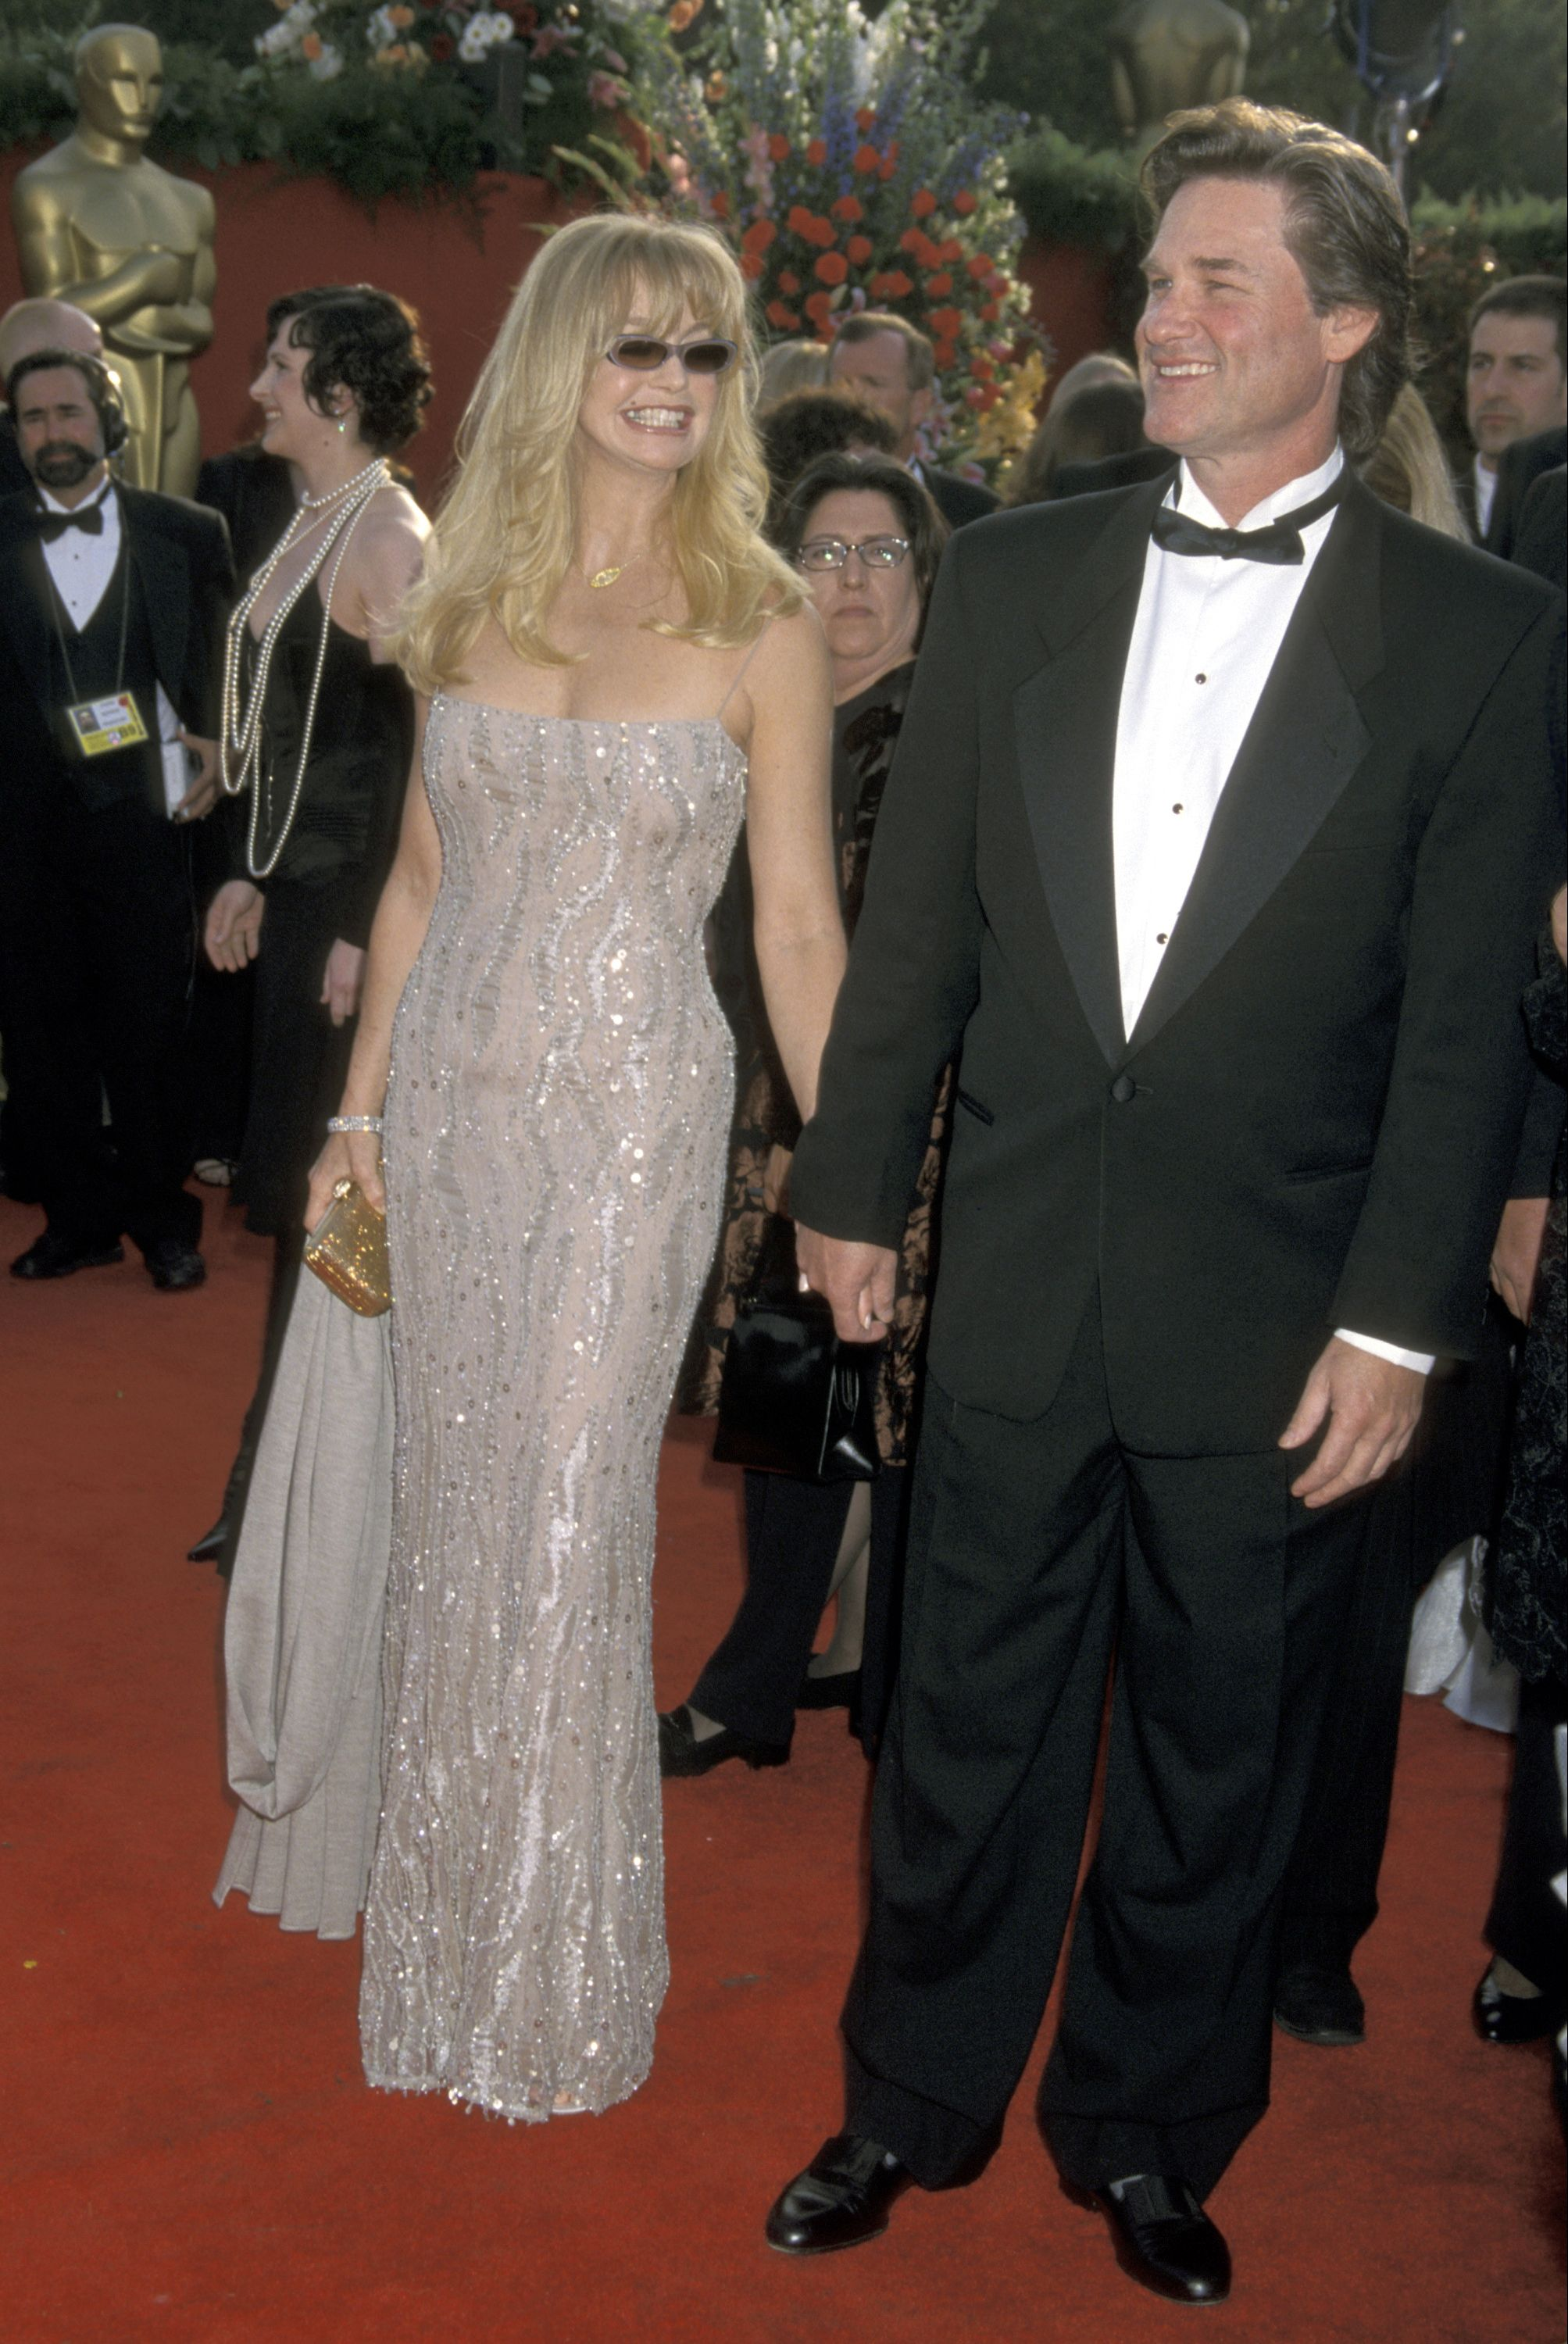 Goldie and Kurt arrive on the red carpet at the 73rd Academy Awards.